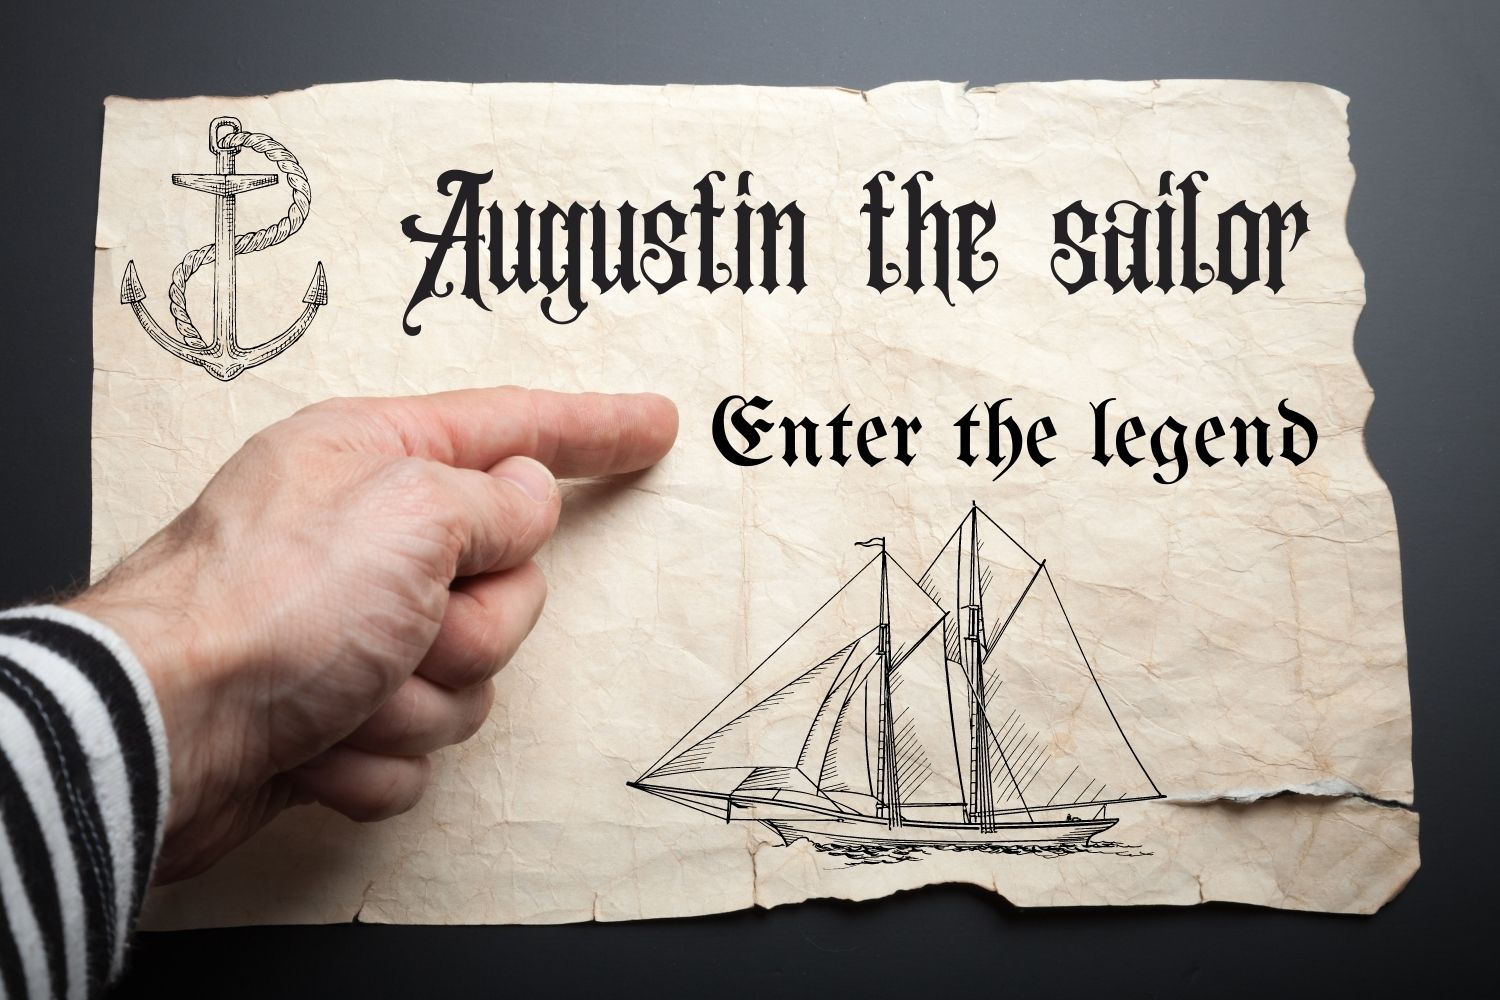 Augustin the sailor